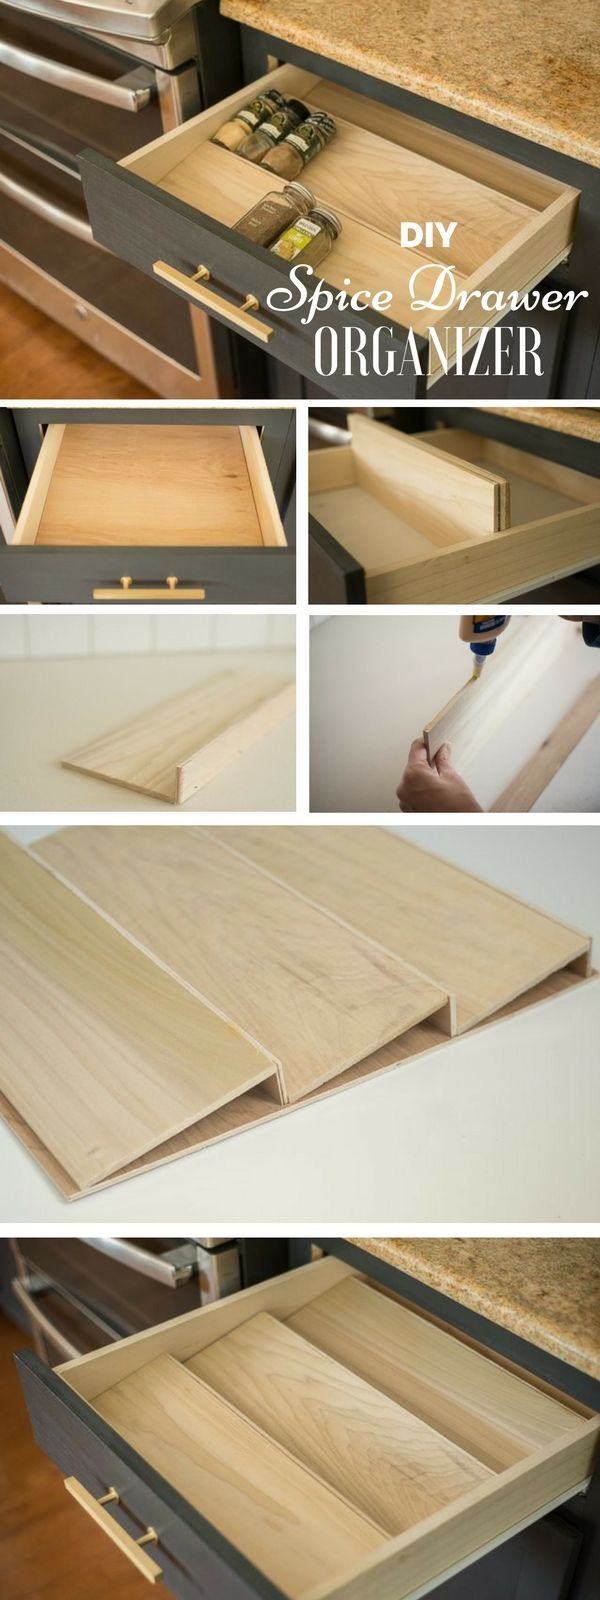 Check out the tutorial: #DIY Spice Drawer Organizer @Industry Standard Design